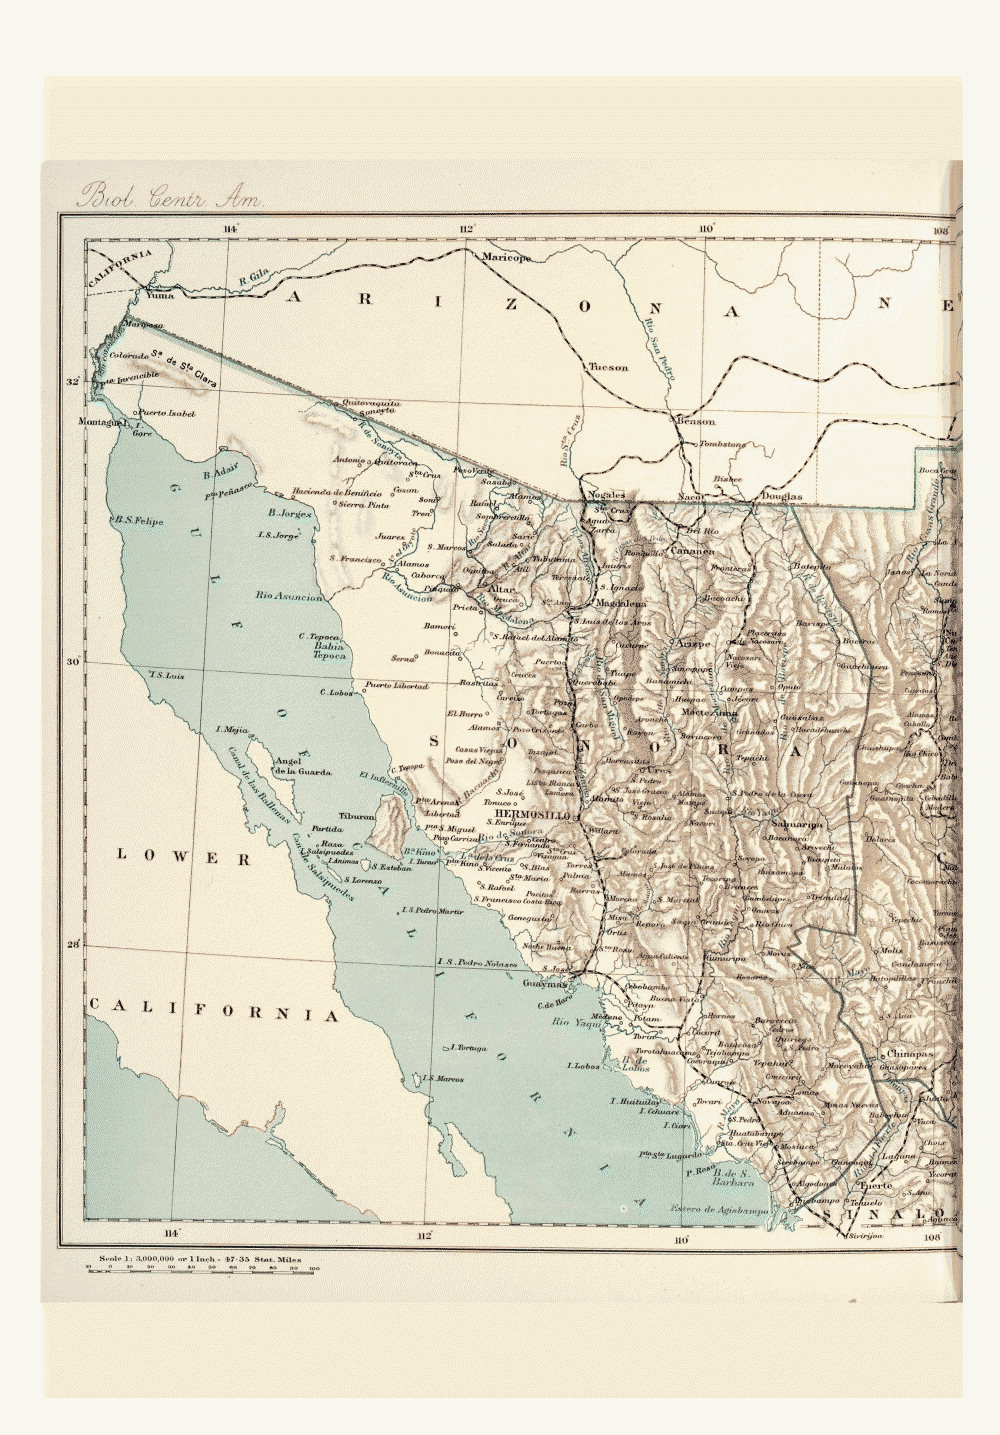 Maps of Central America,  Image number:bca_01_00_00_182